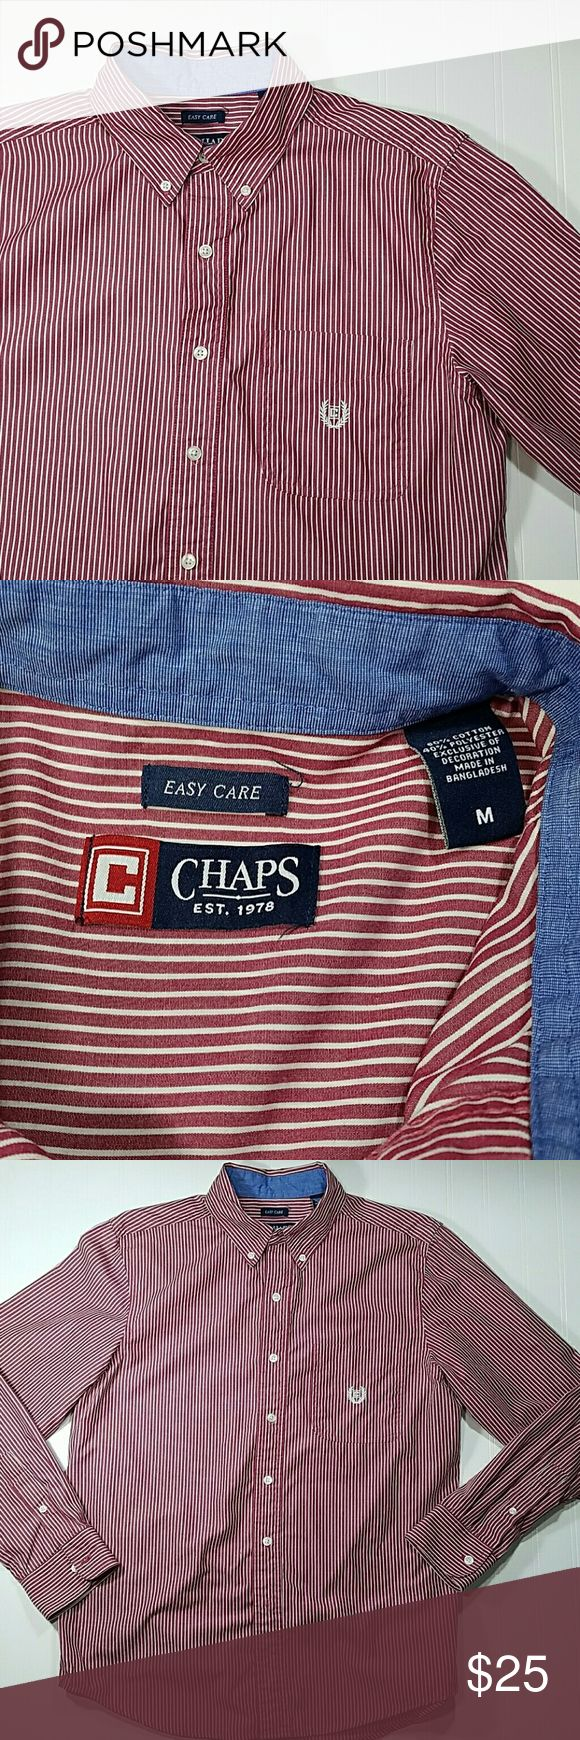 🆕 Chaps shirt Red and white striped button up shirt, collar buttons down, pocket on the left with chaps sign. Cotton/polyester.  Excellent condition.  Sz medium Chaps Shirts Casual Button Down Shirts